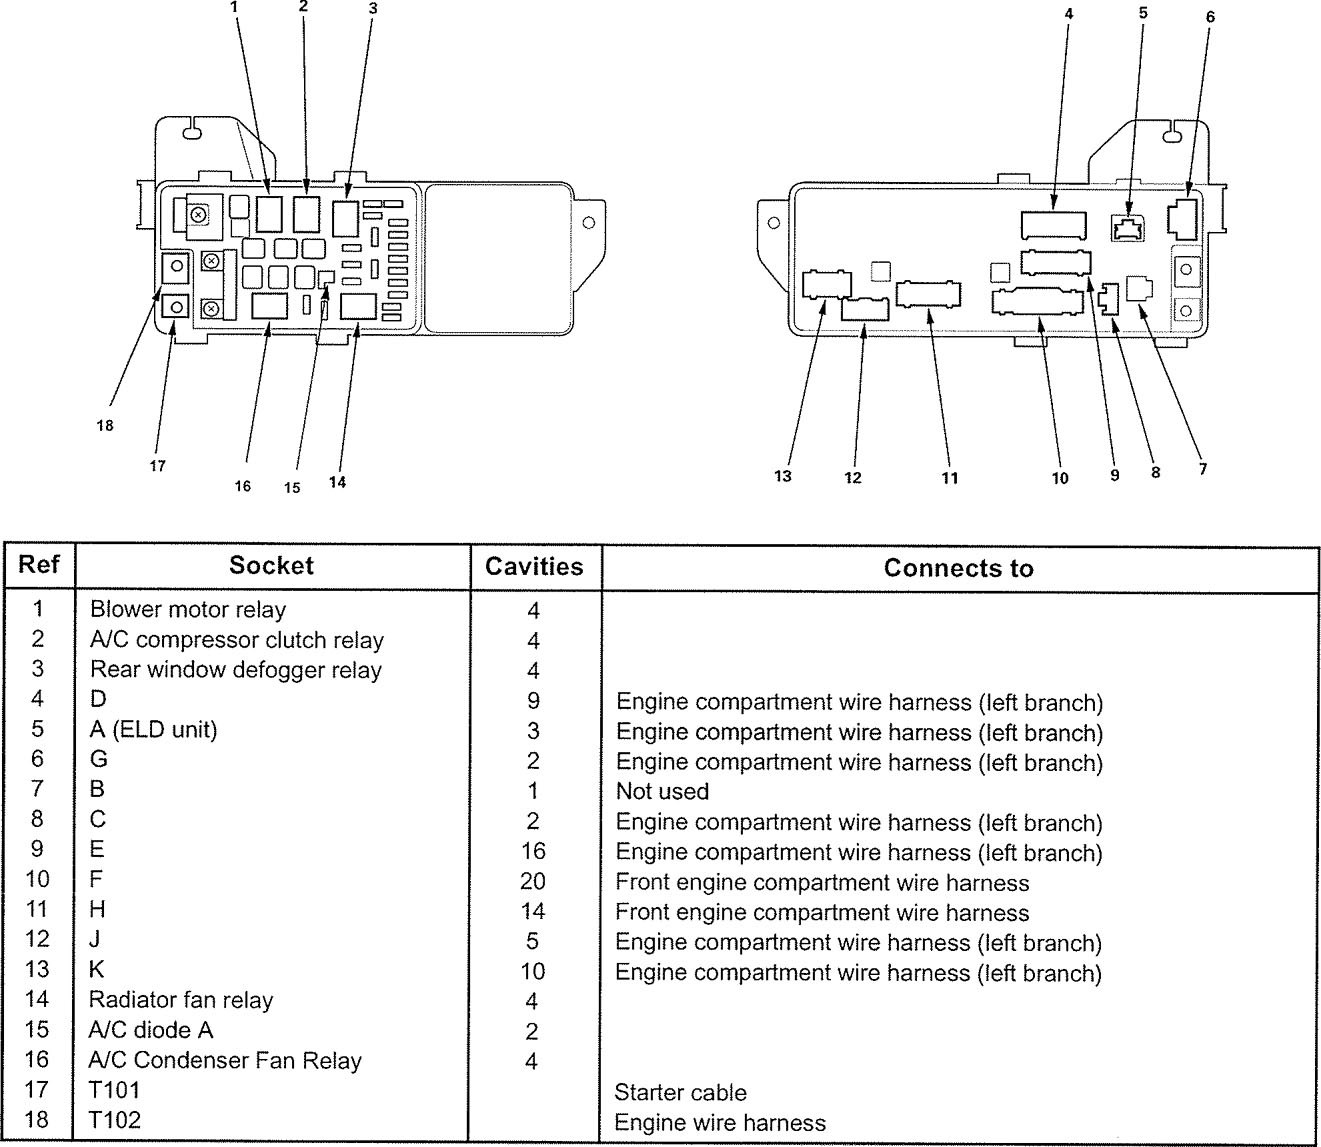 Acura Tl  2005  - Wiring Diagrams - Fuse Panel